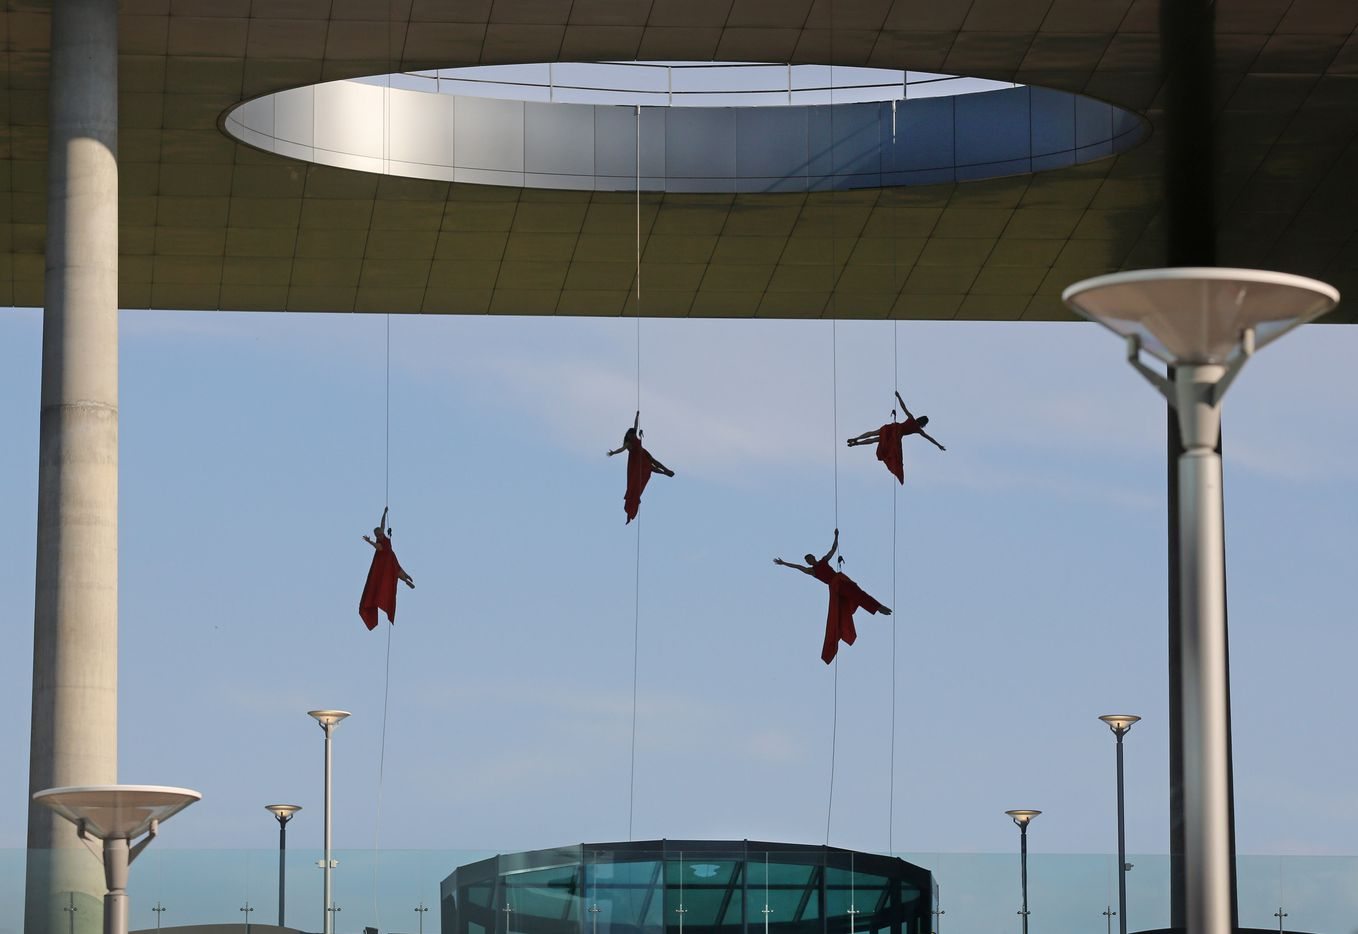 Aerial dancers perform while suspended from the Toyota building at the grand opening ceremony of the Toyota headquarters in Plano, Texas, photographed on Thursday, July 6, 2017.